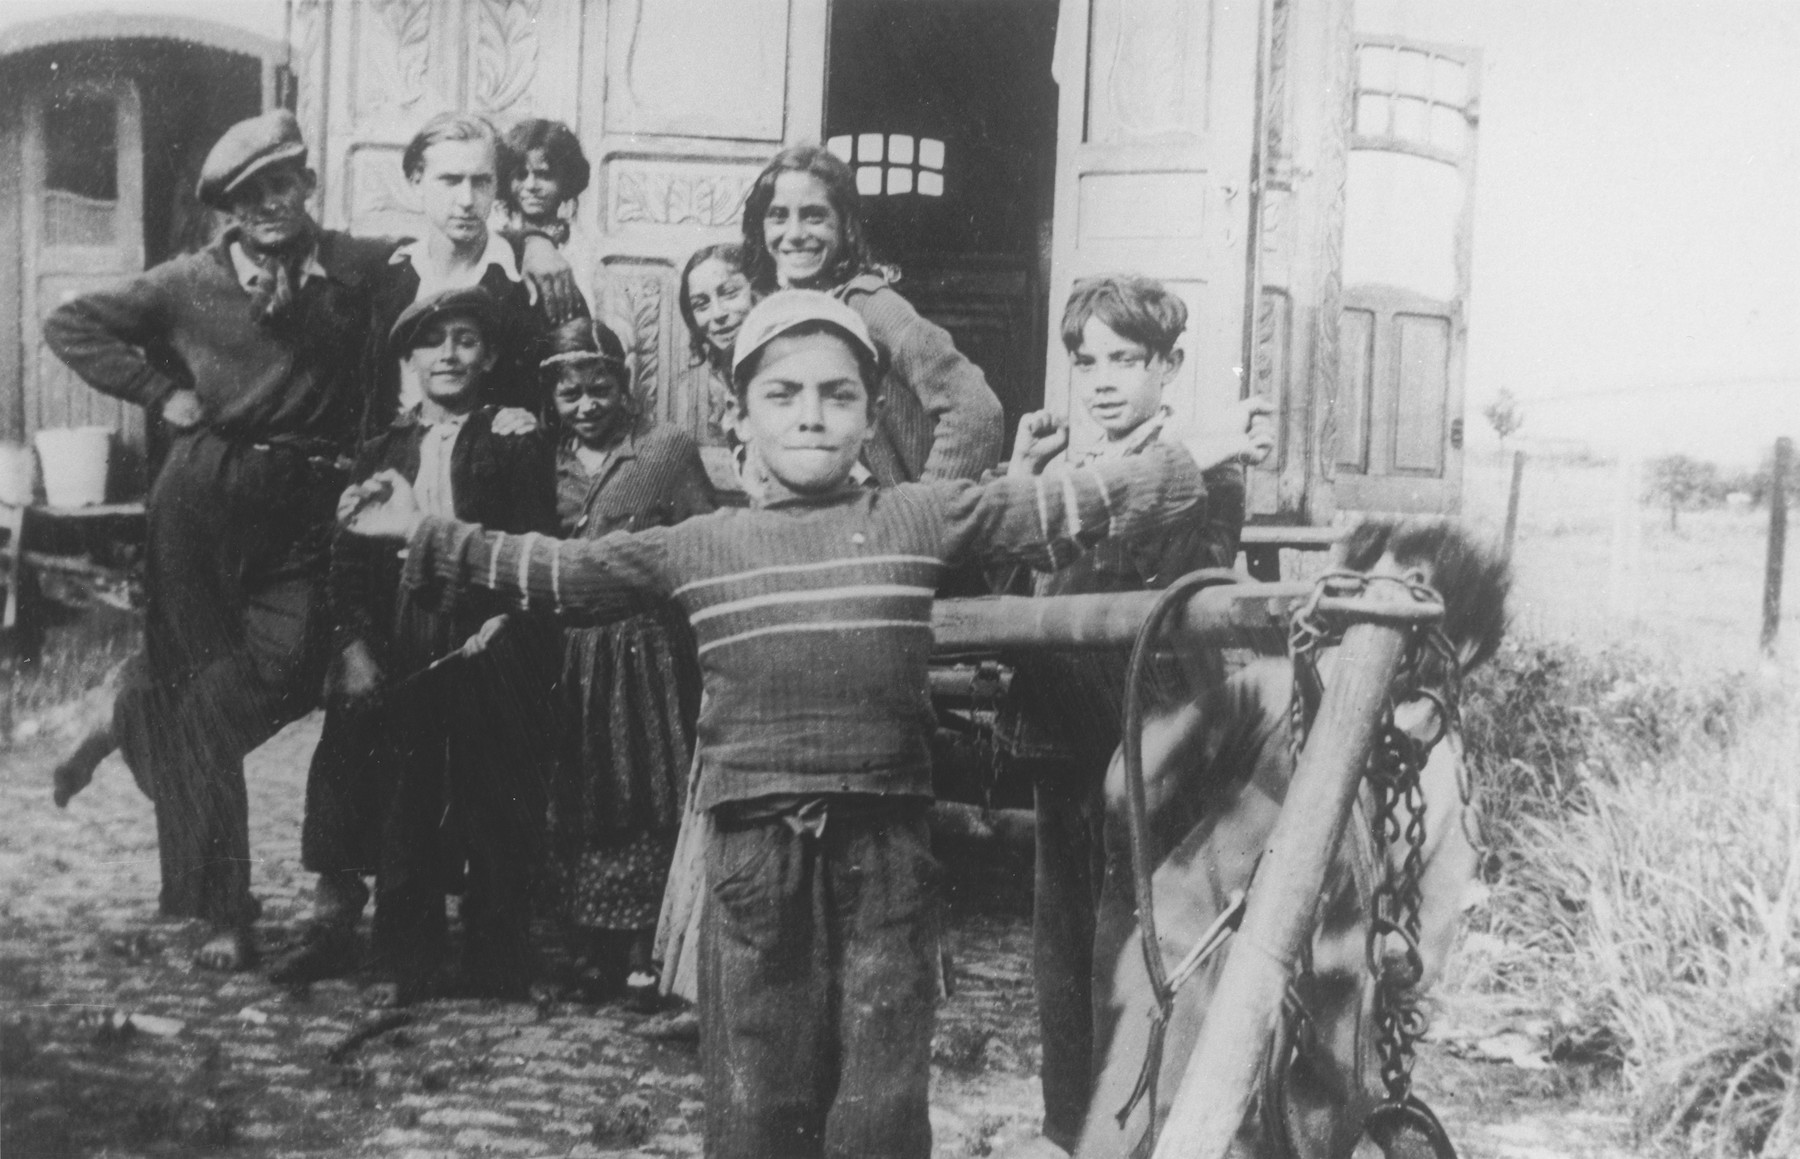 A Roma (Gypsy) child poses in front of a caravan with his arms outstretched, while his family looks on.  Pictured in the back, second from the left, is Jan Yoors.